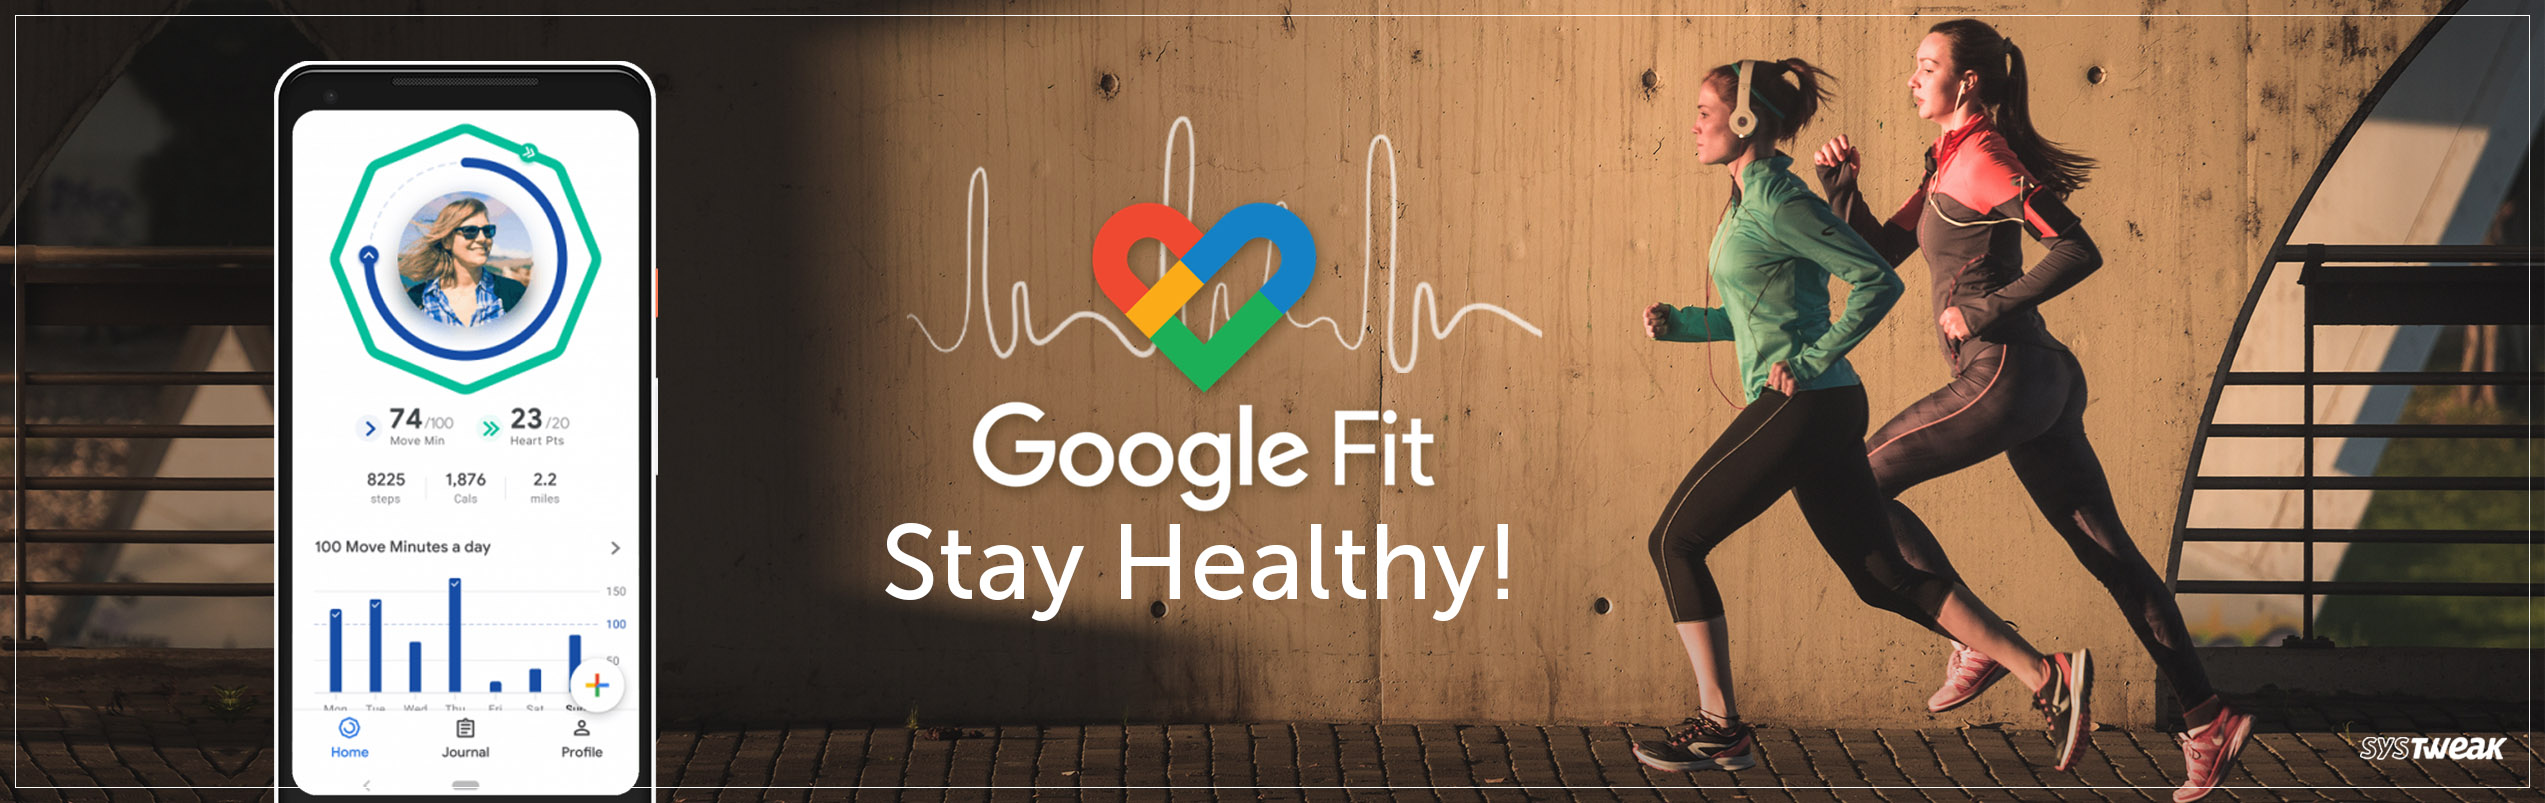 How To Use Google Fit To Track Blood Pressure, Weight, And